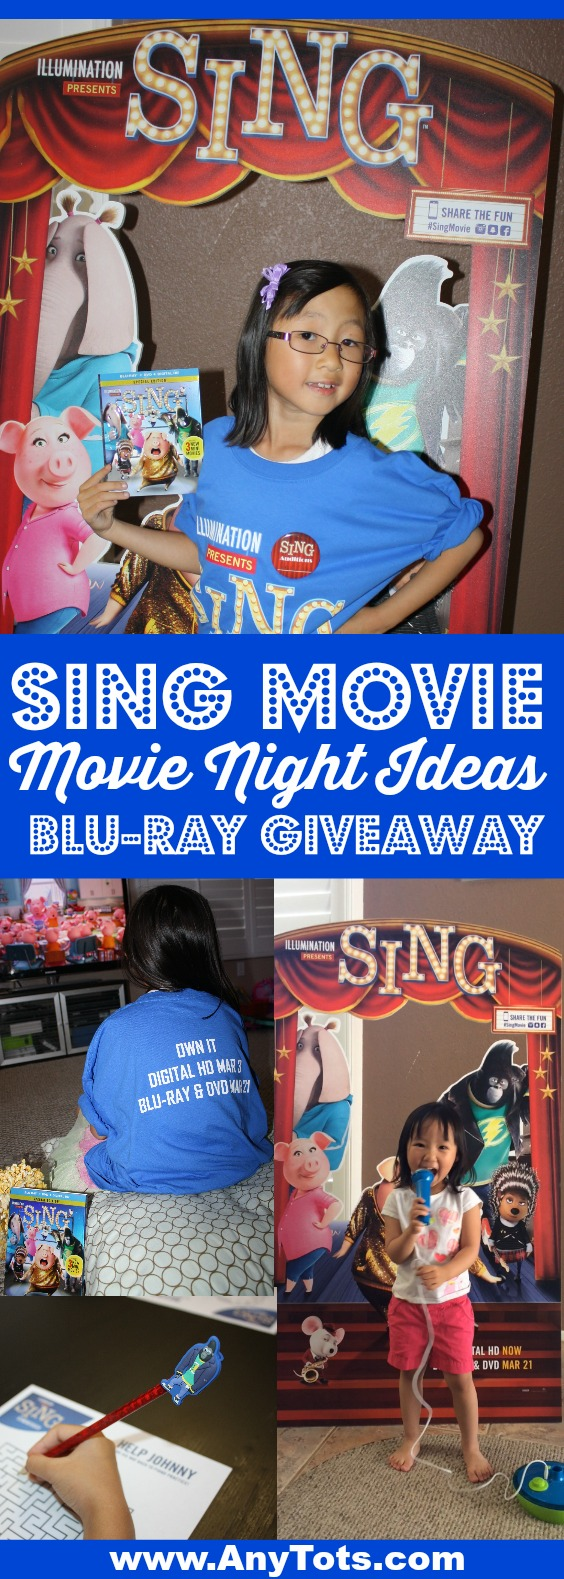 sing movie night ideas